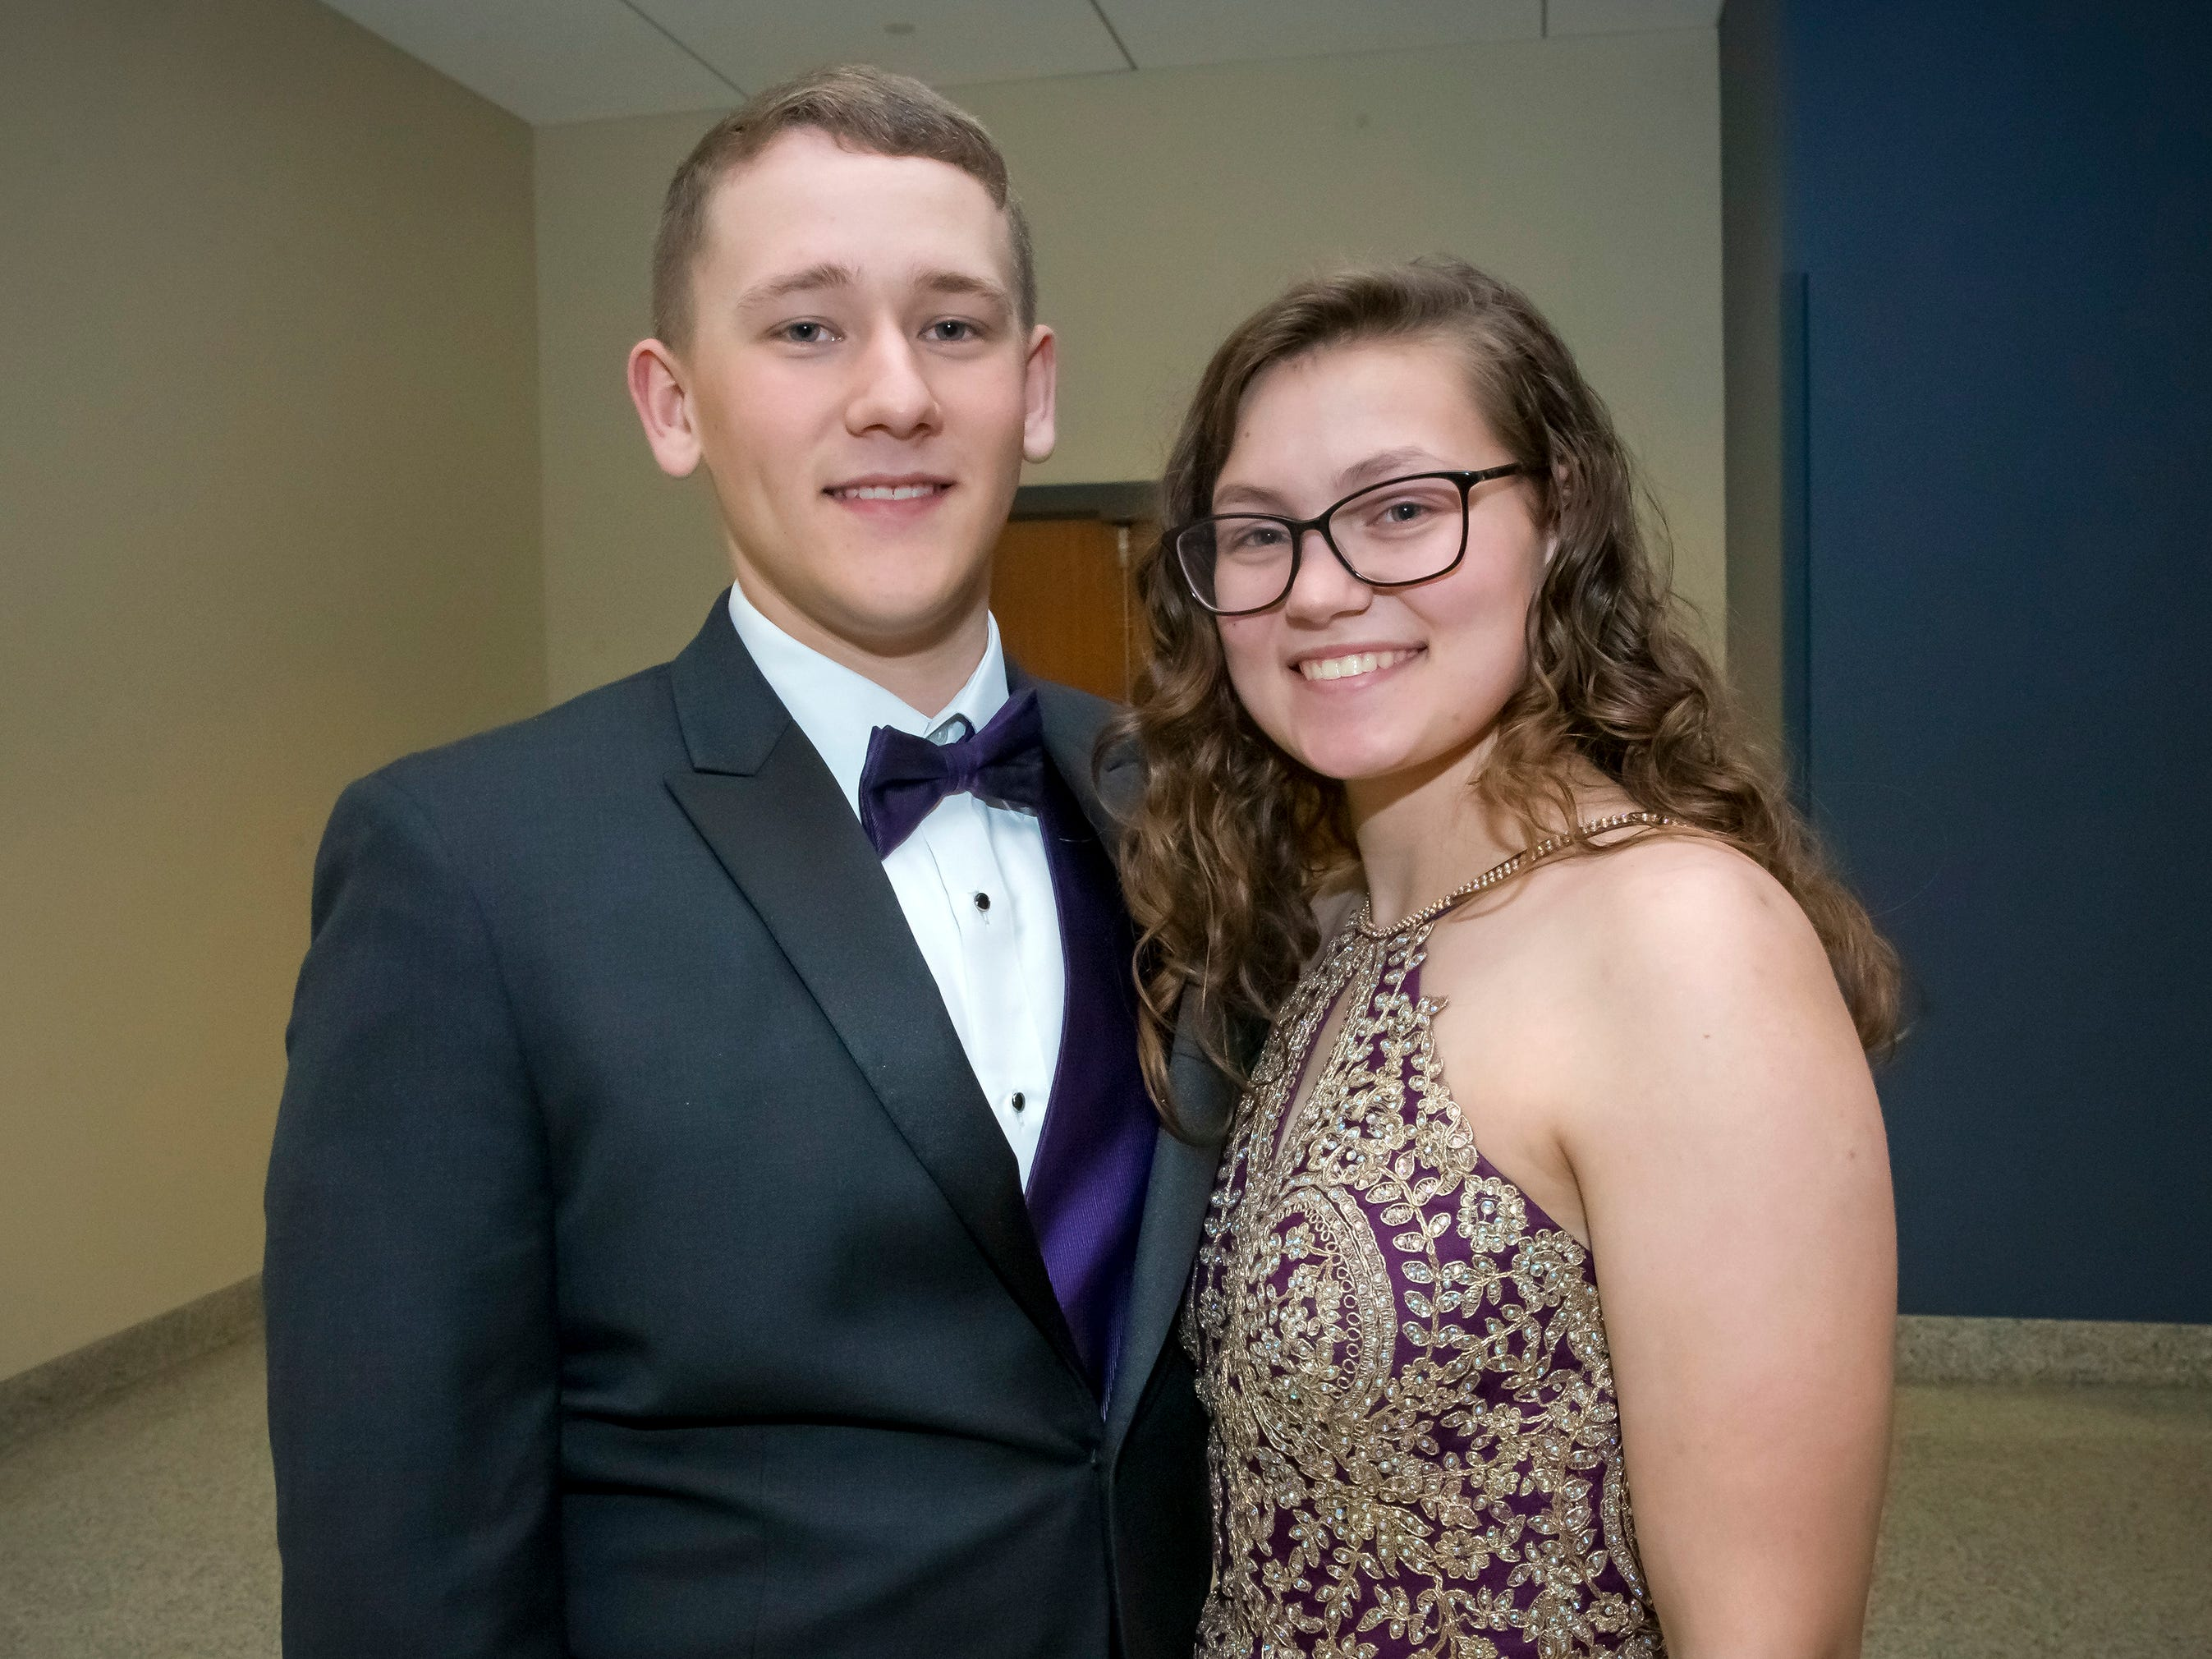 Joseph Furgason and Emma Short arrive at Siegel High School prom at MTSU, Saturday, April 13, 2019.